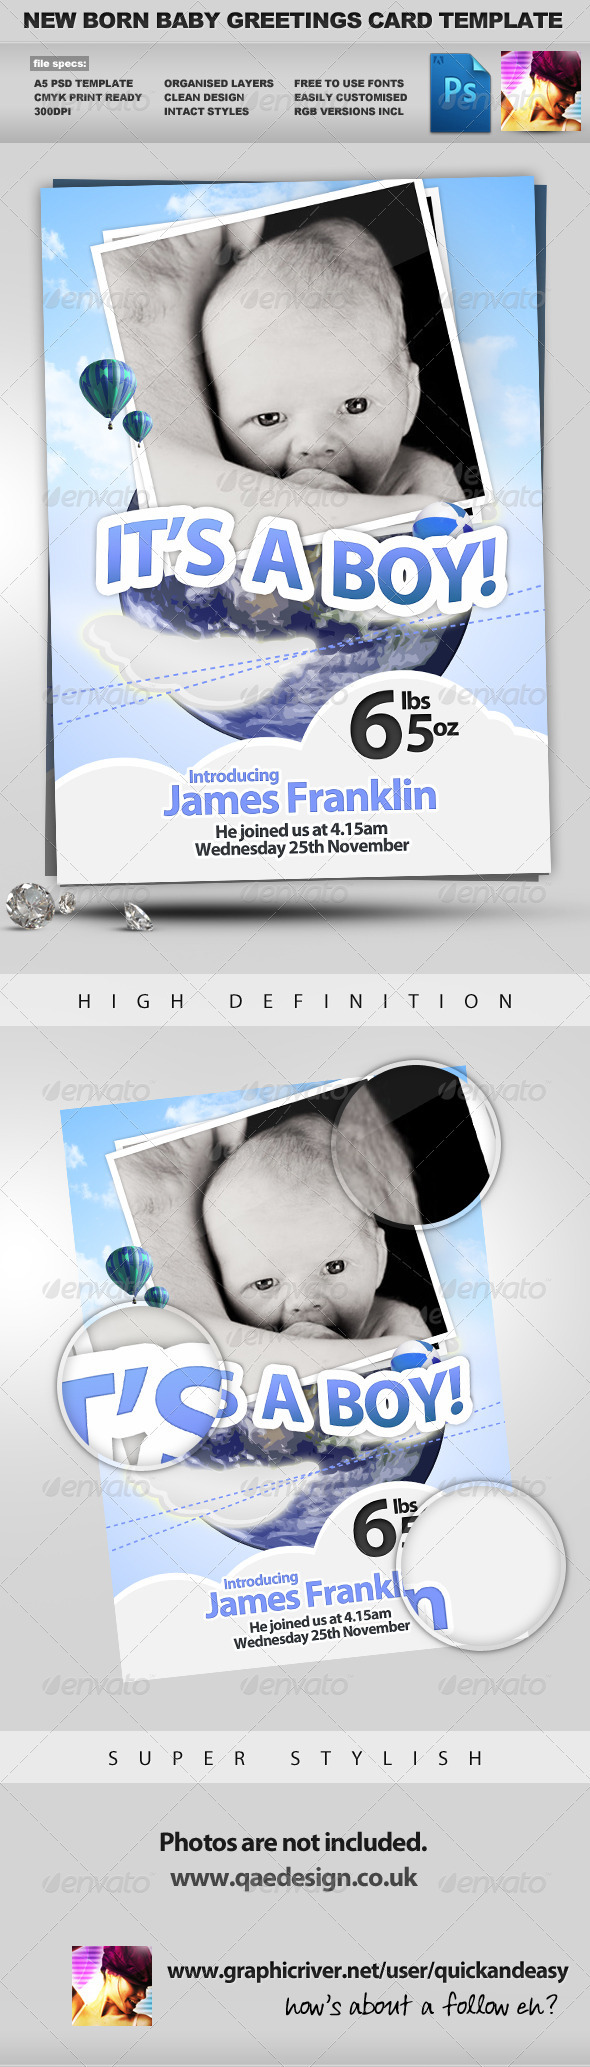 New Born Baby Greeting Card - Family Cards & Invites